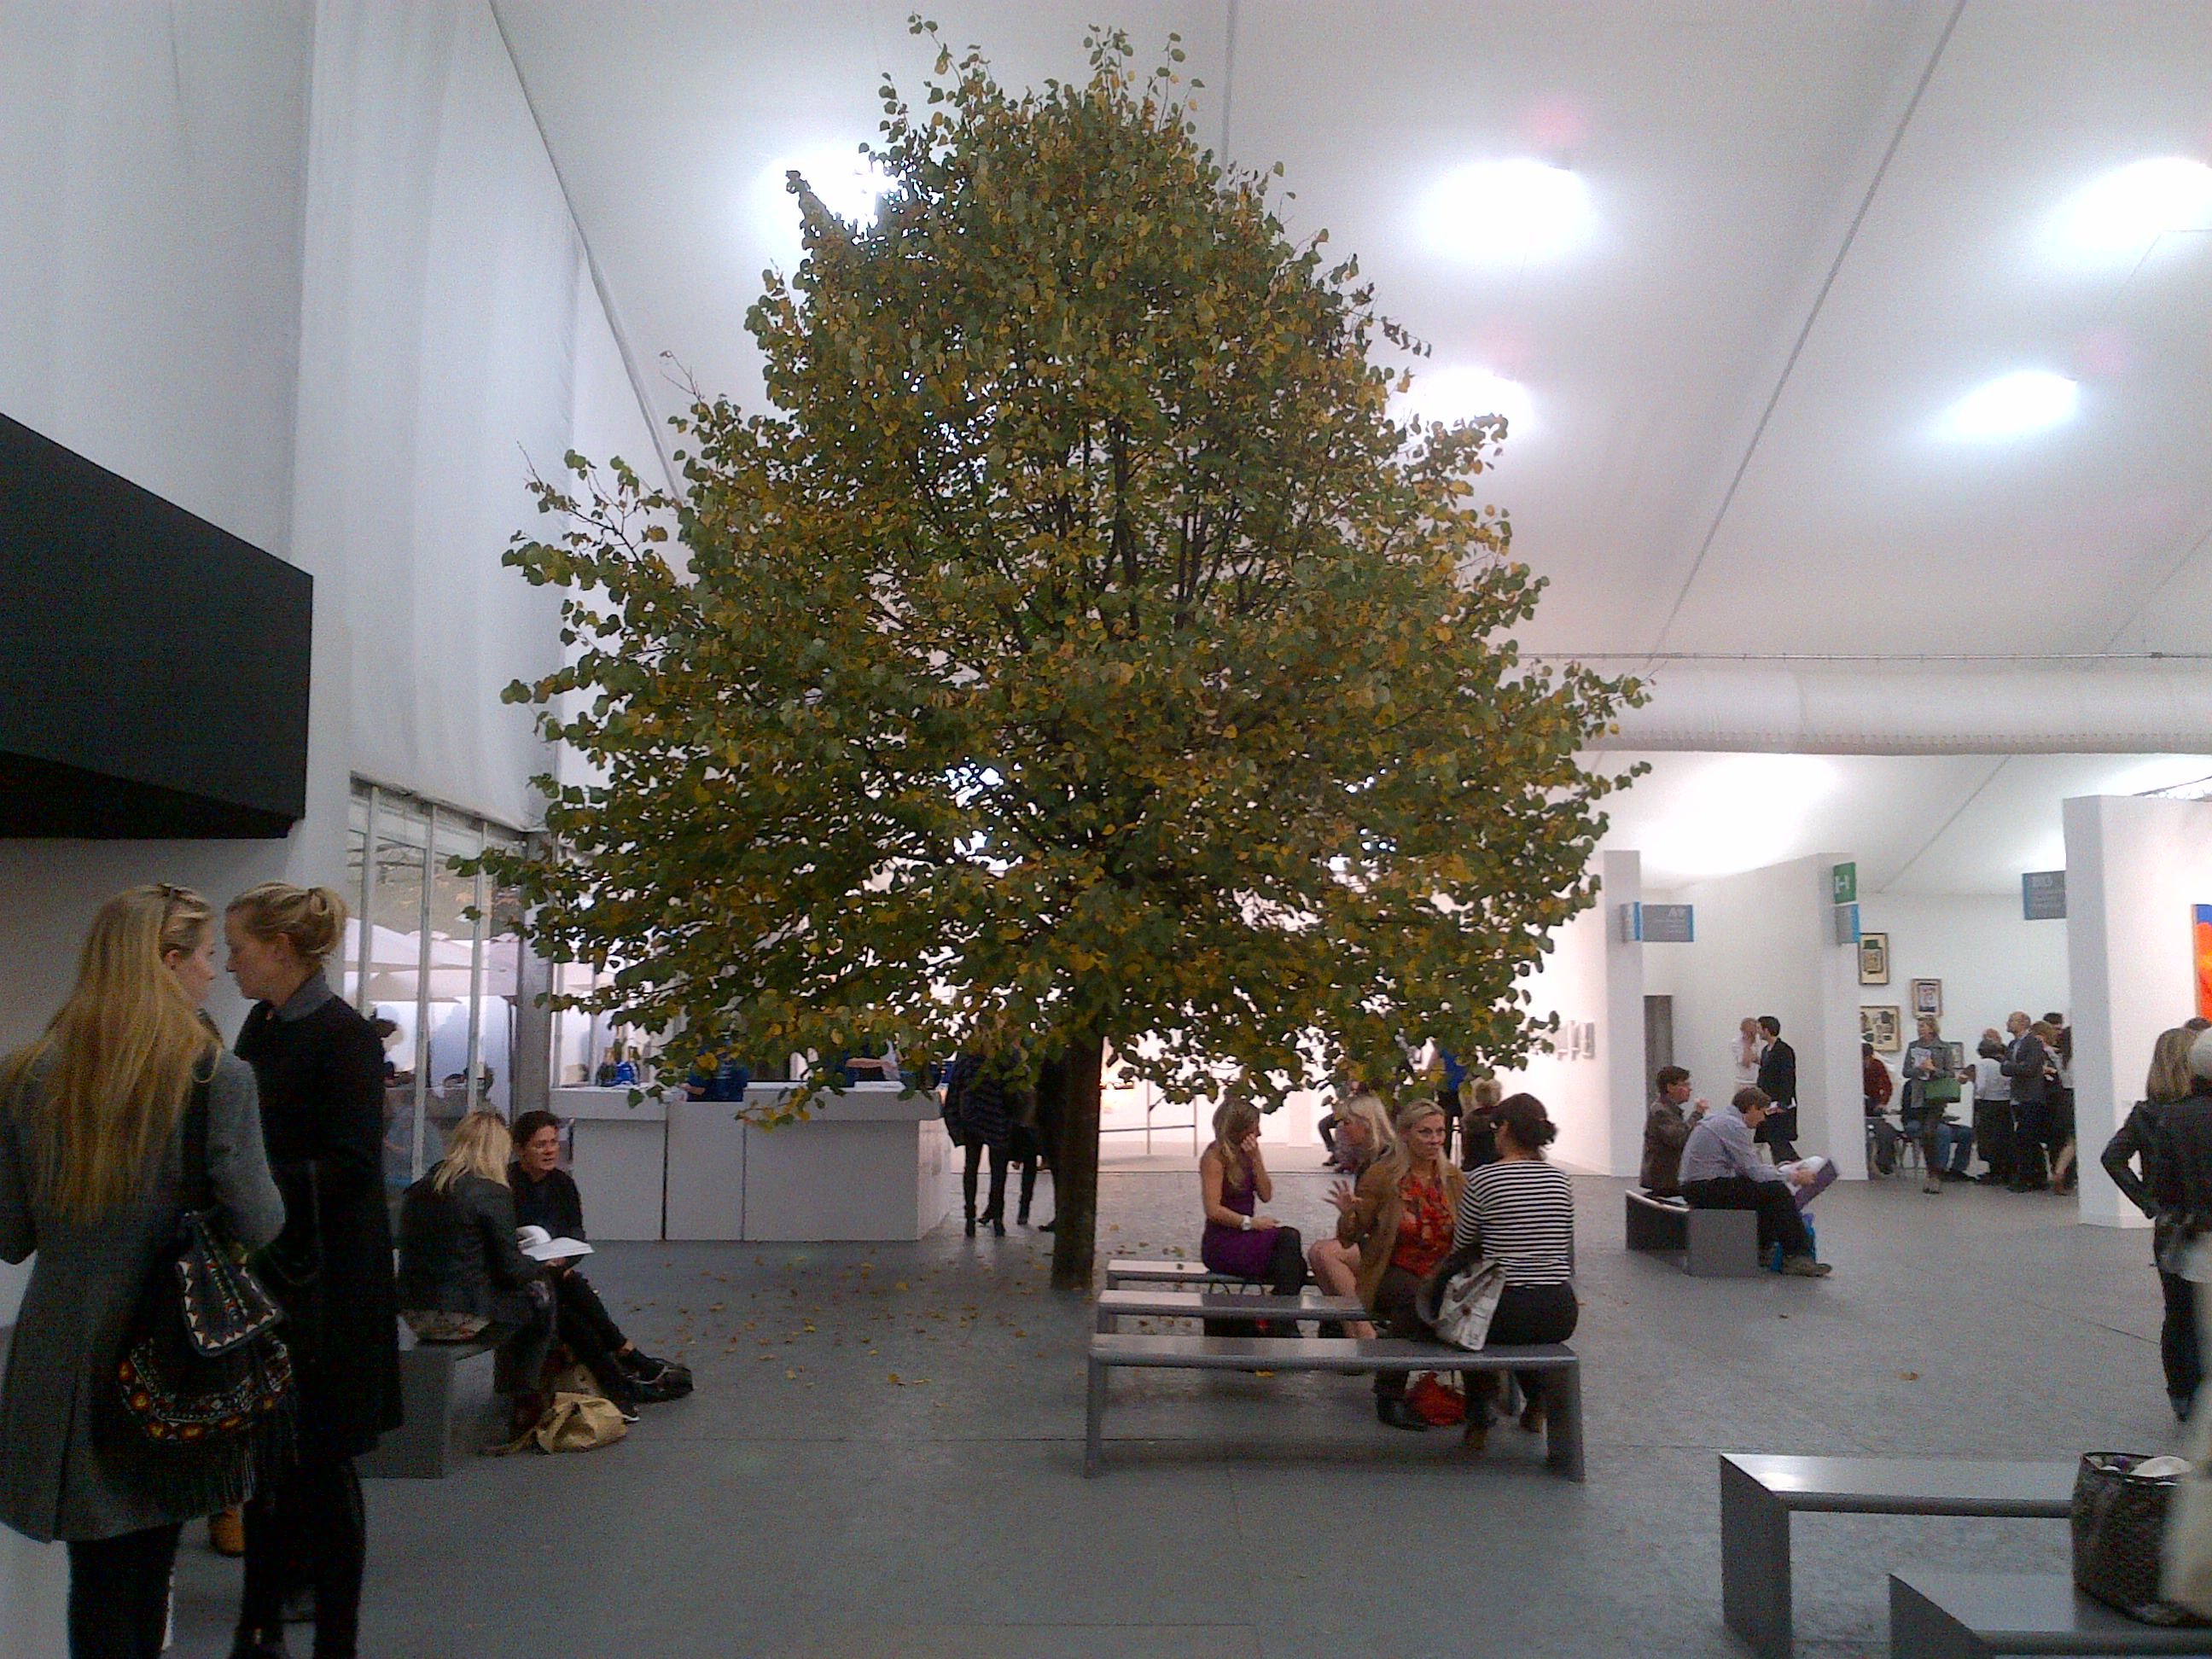 frieze tree